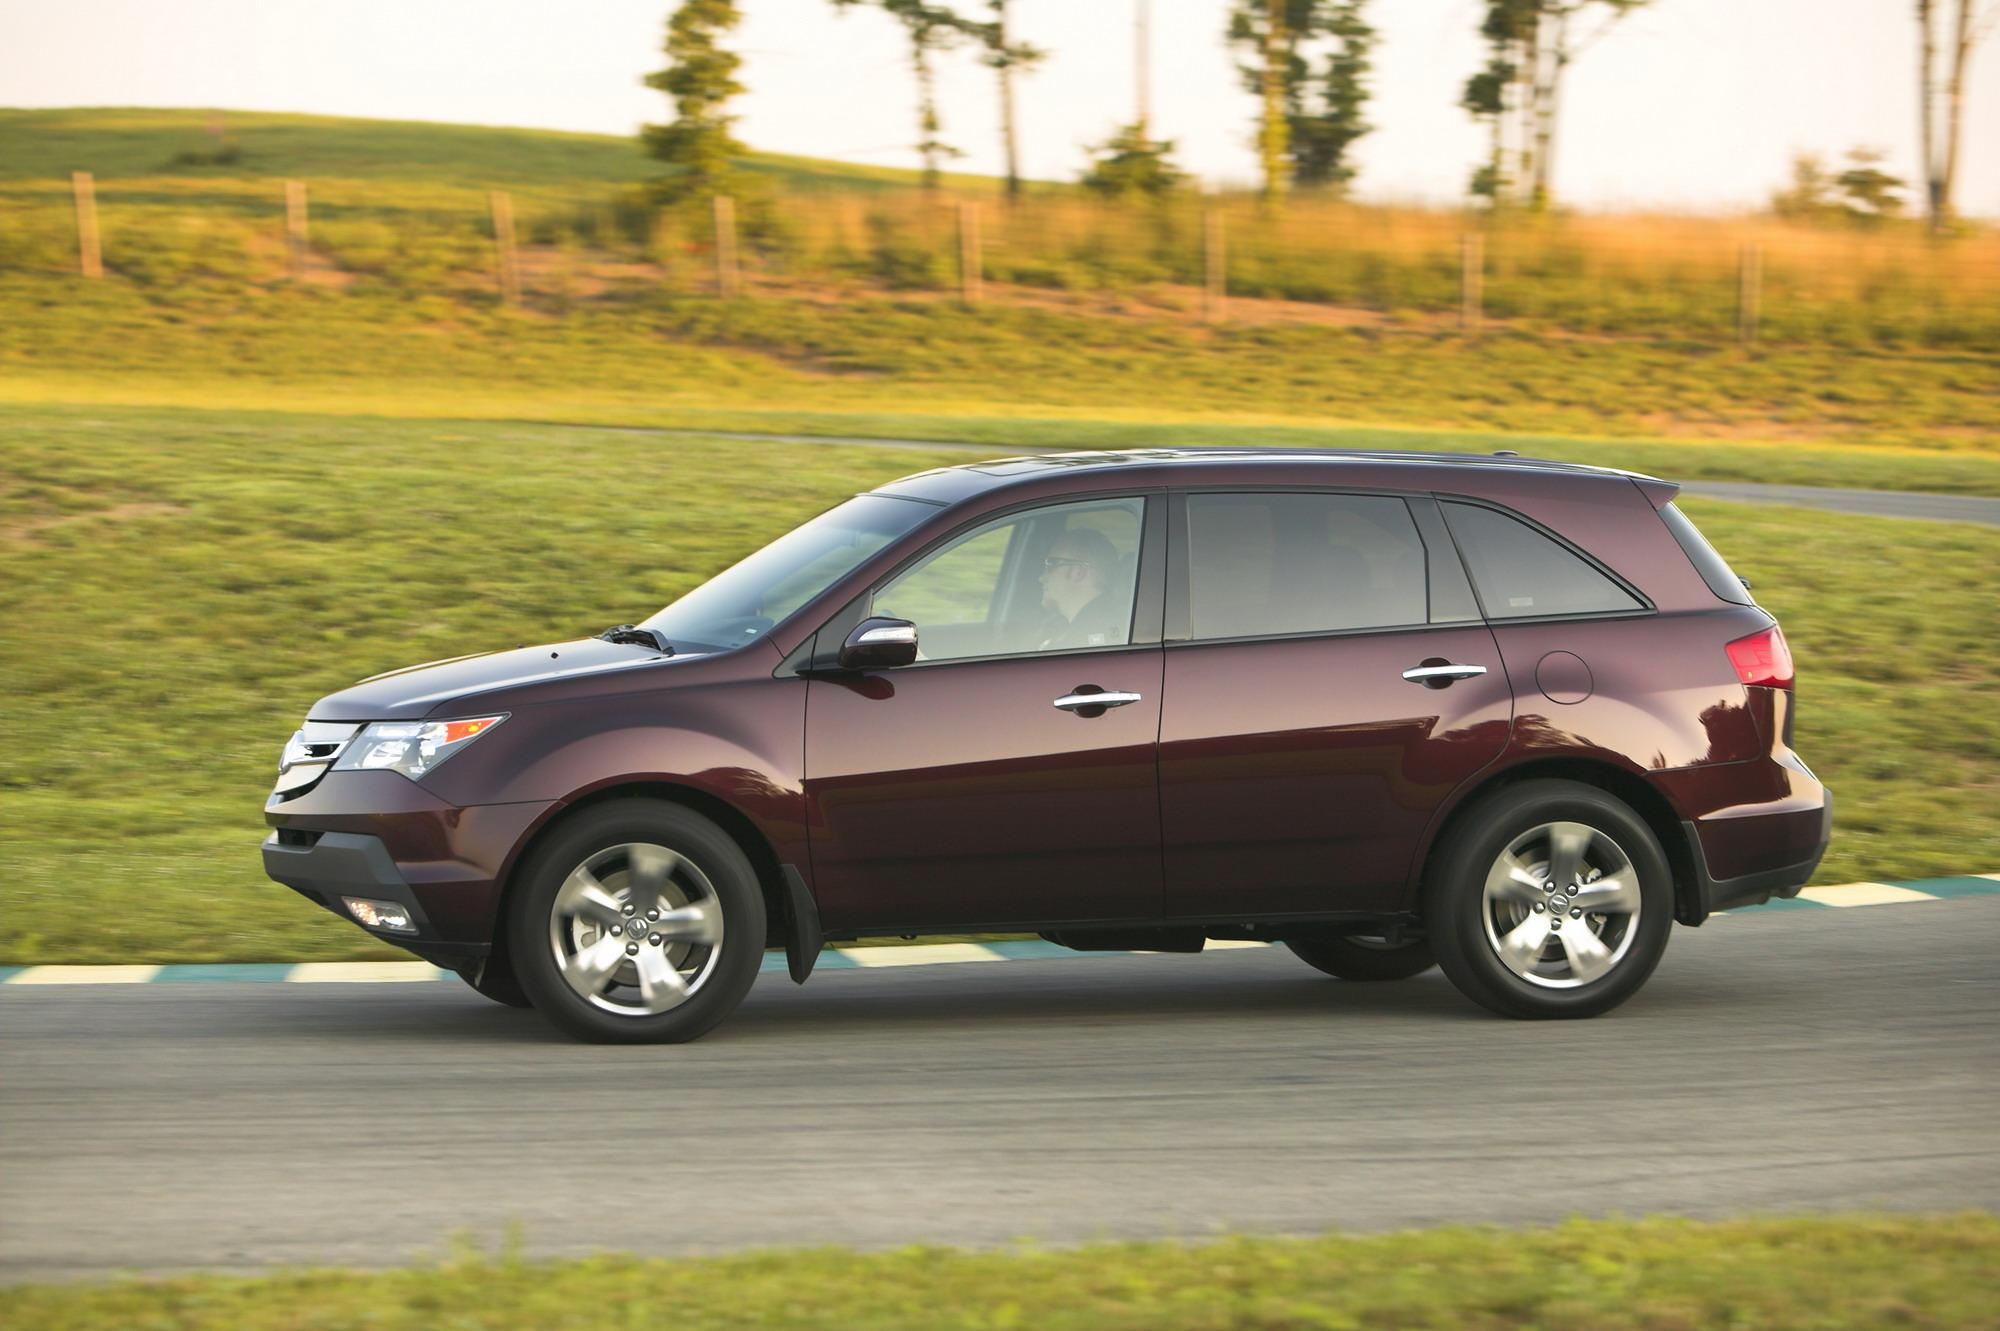 acura va sale mdx loaded usautomobile for chantilly year suv model make fully